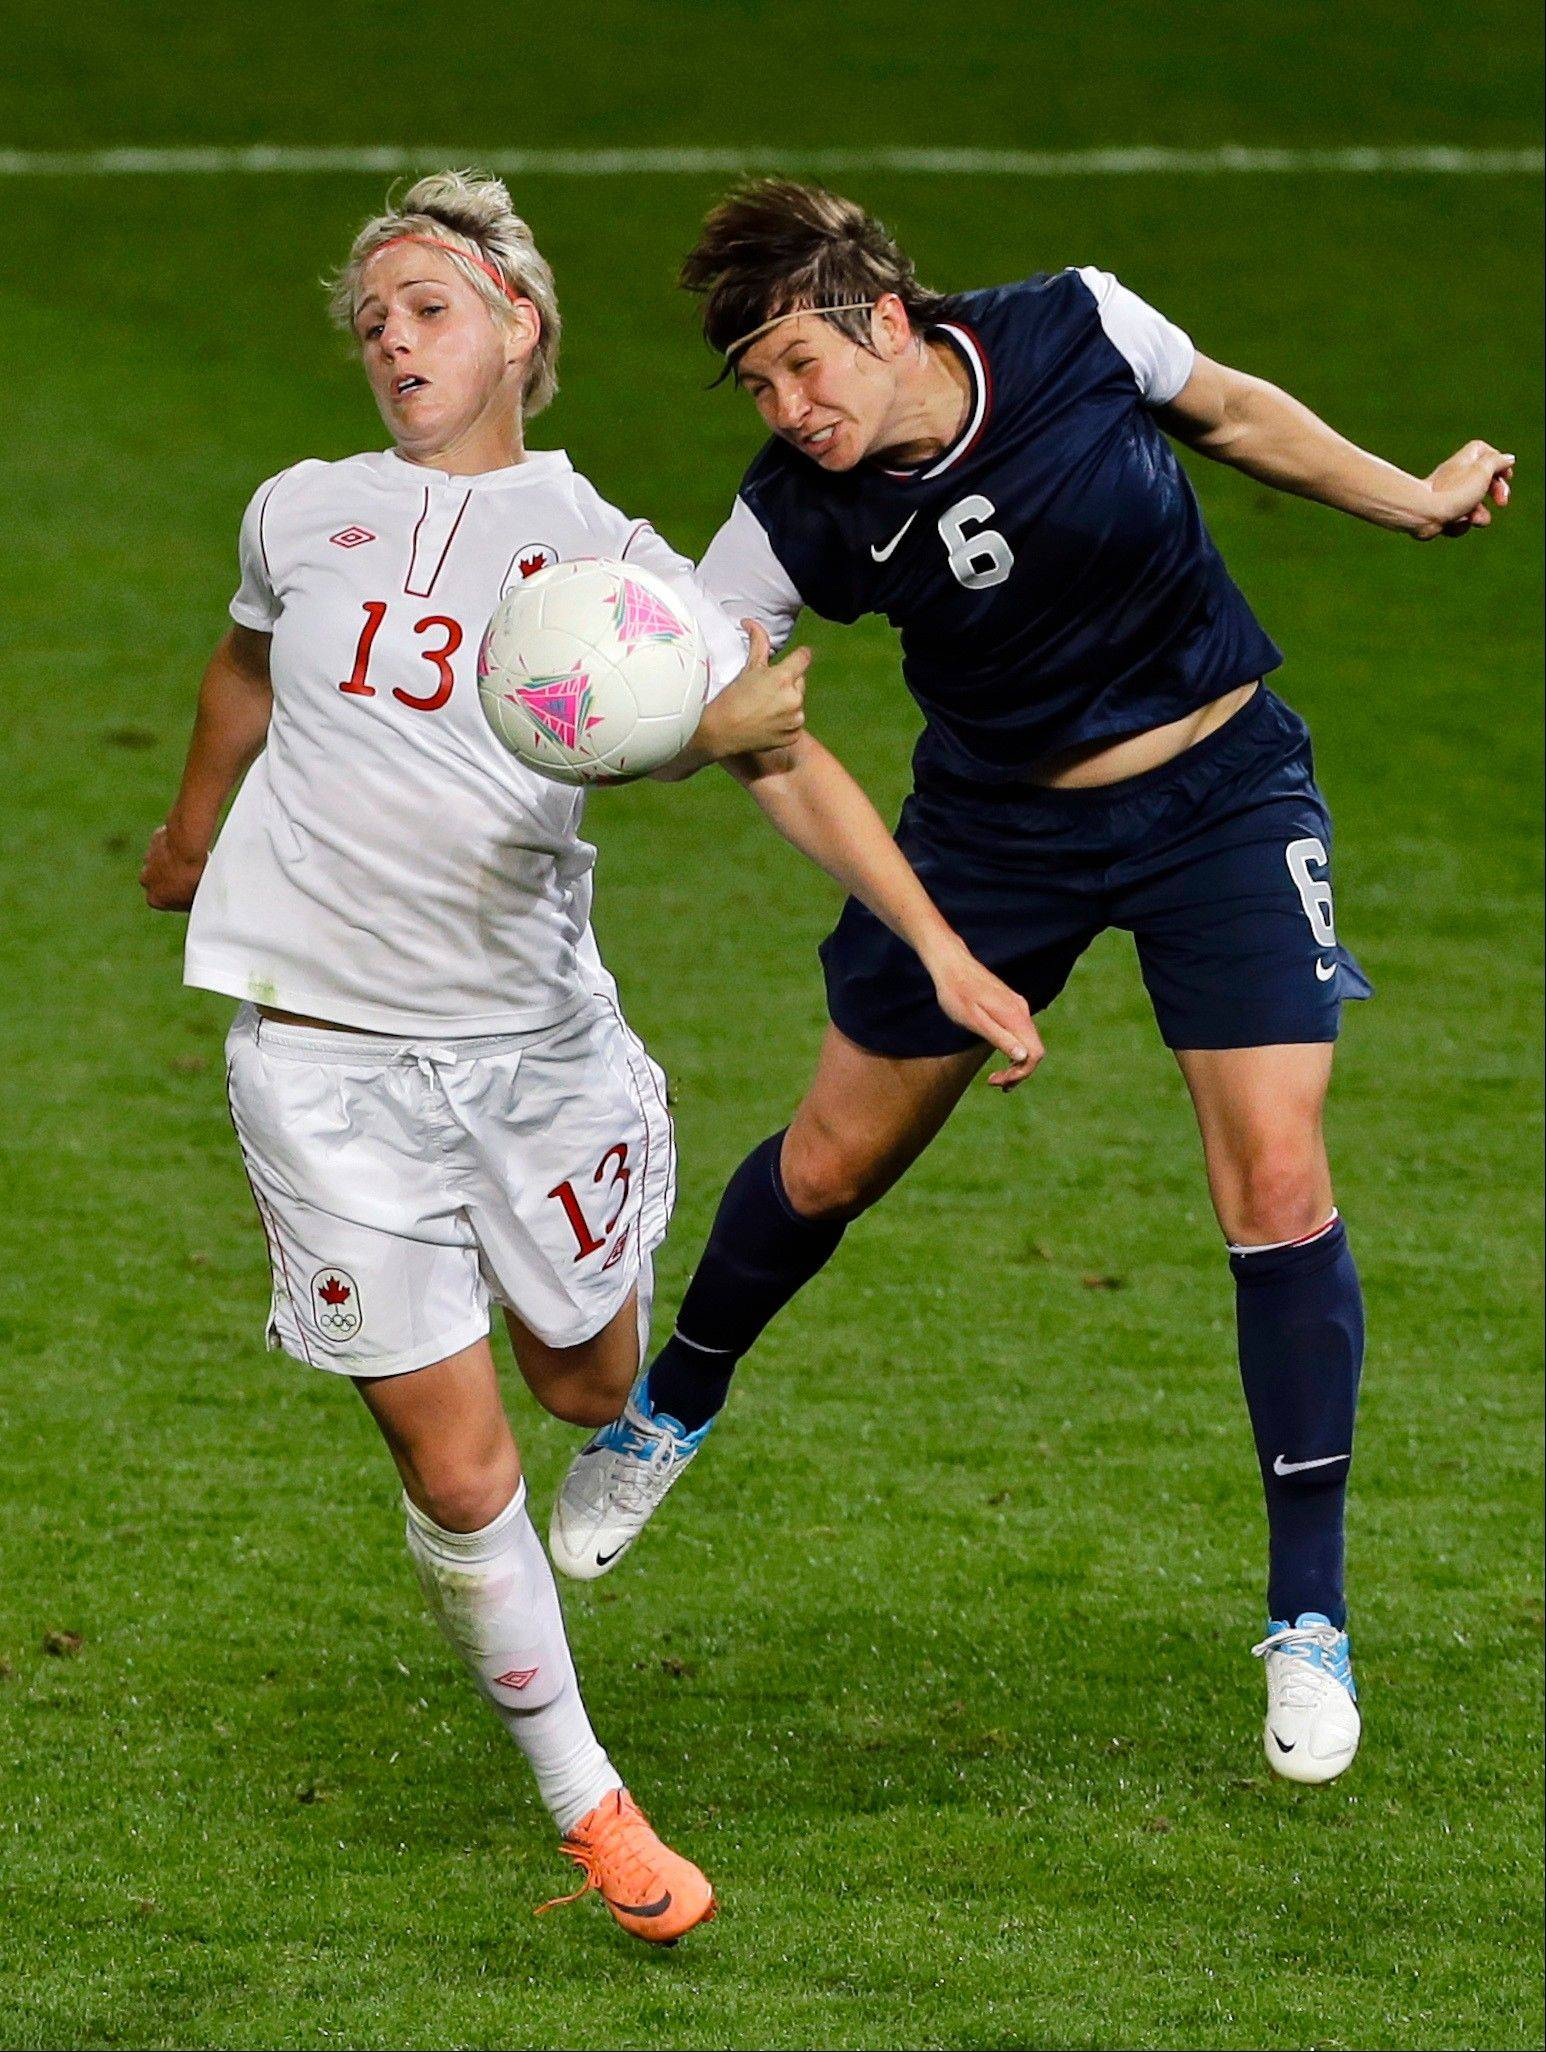 Team USA defender and Crystal Lake native Amy Le Peilbet, right, and Canada's Sophie Schmidt compete for the ball during Monday's Olympic semifinal match in Manchester, England.